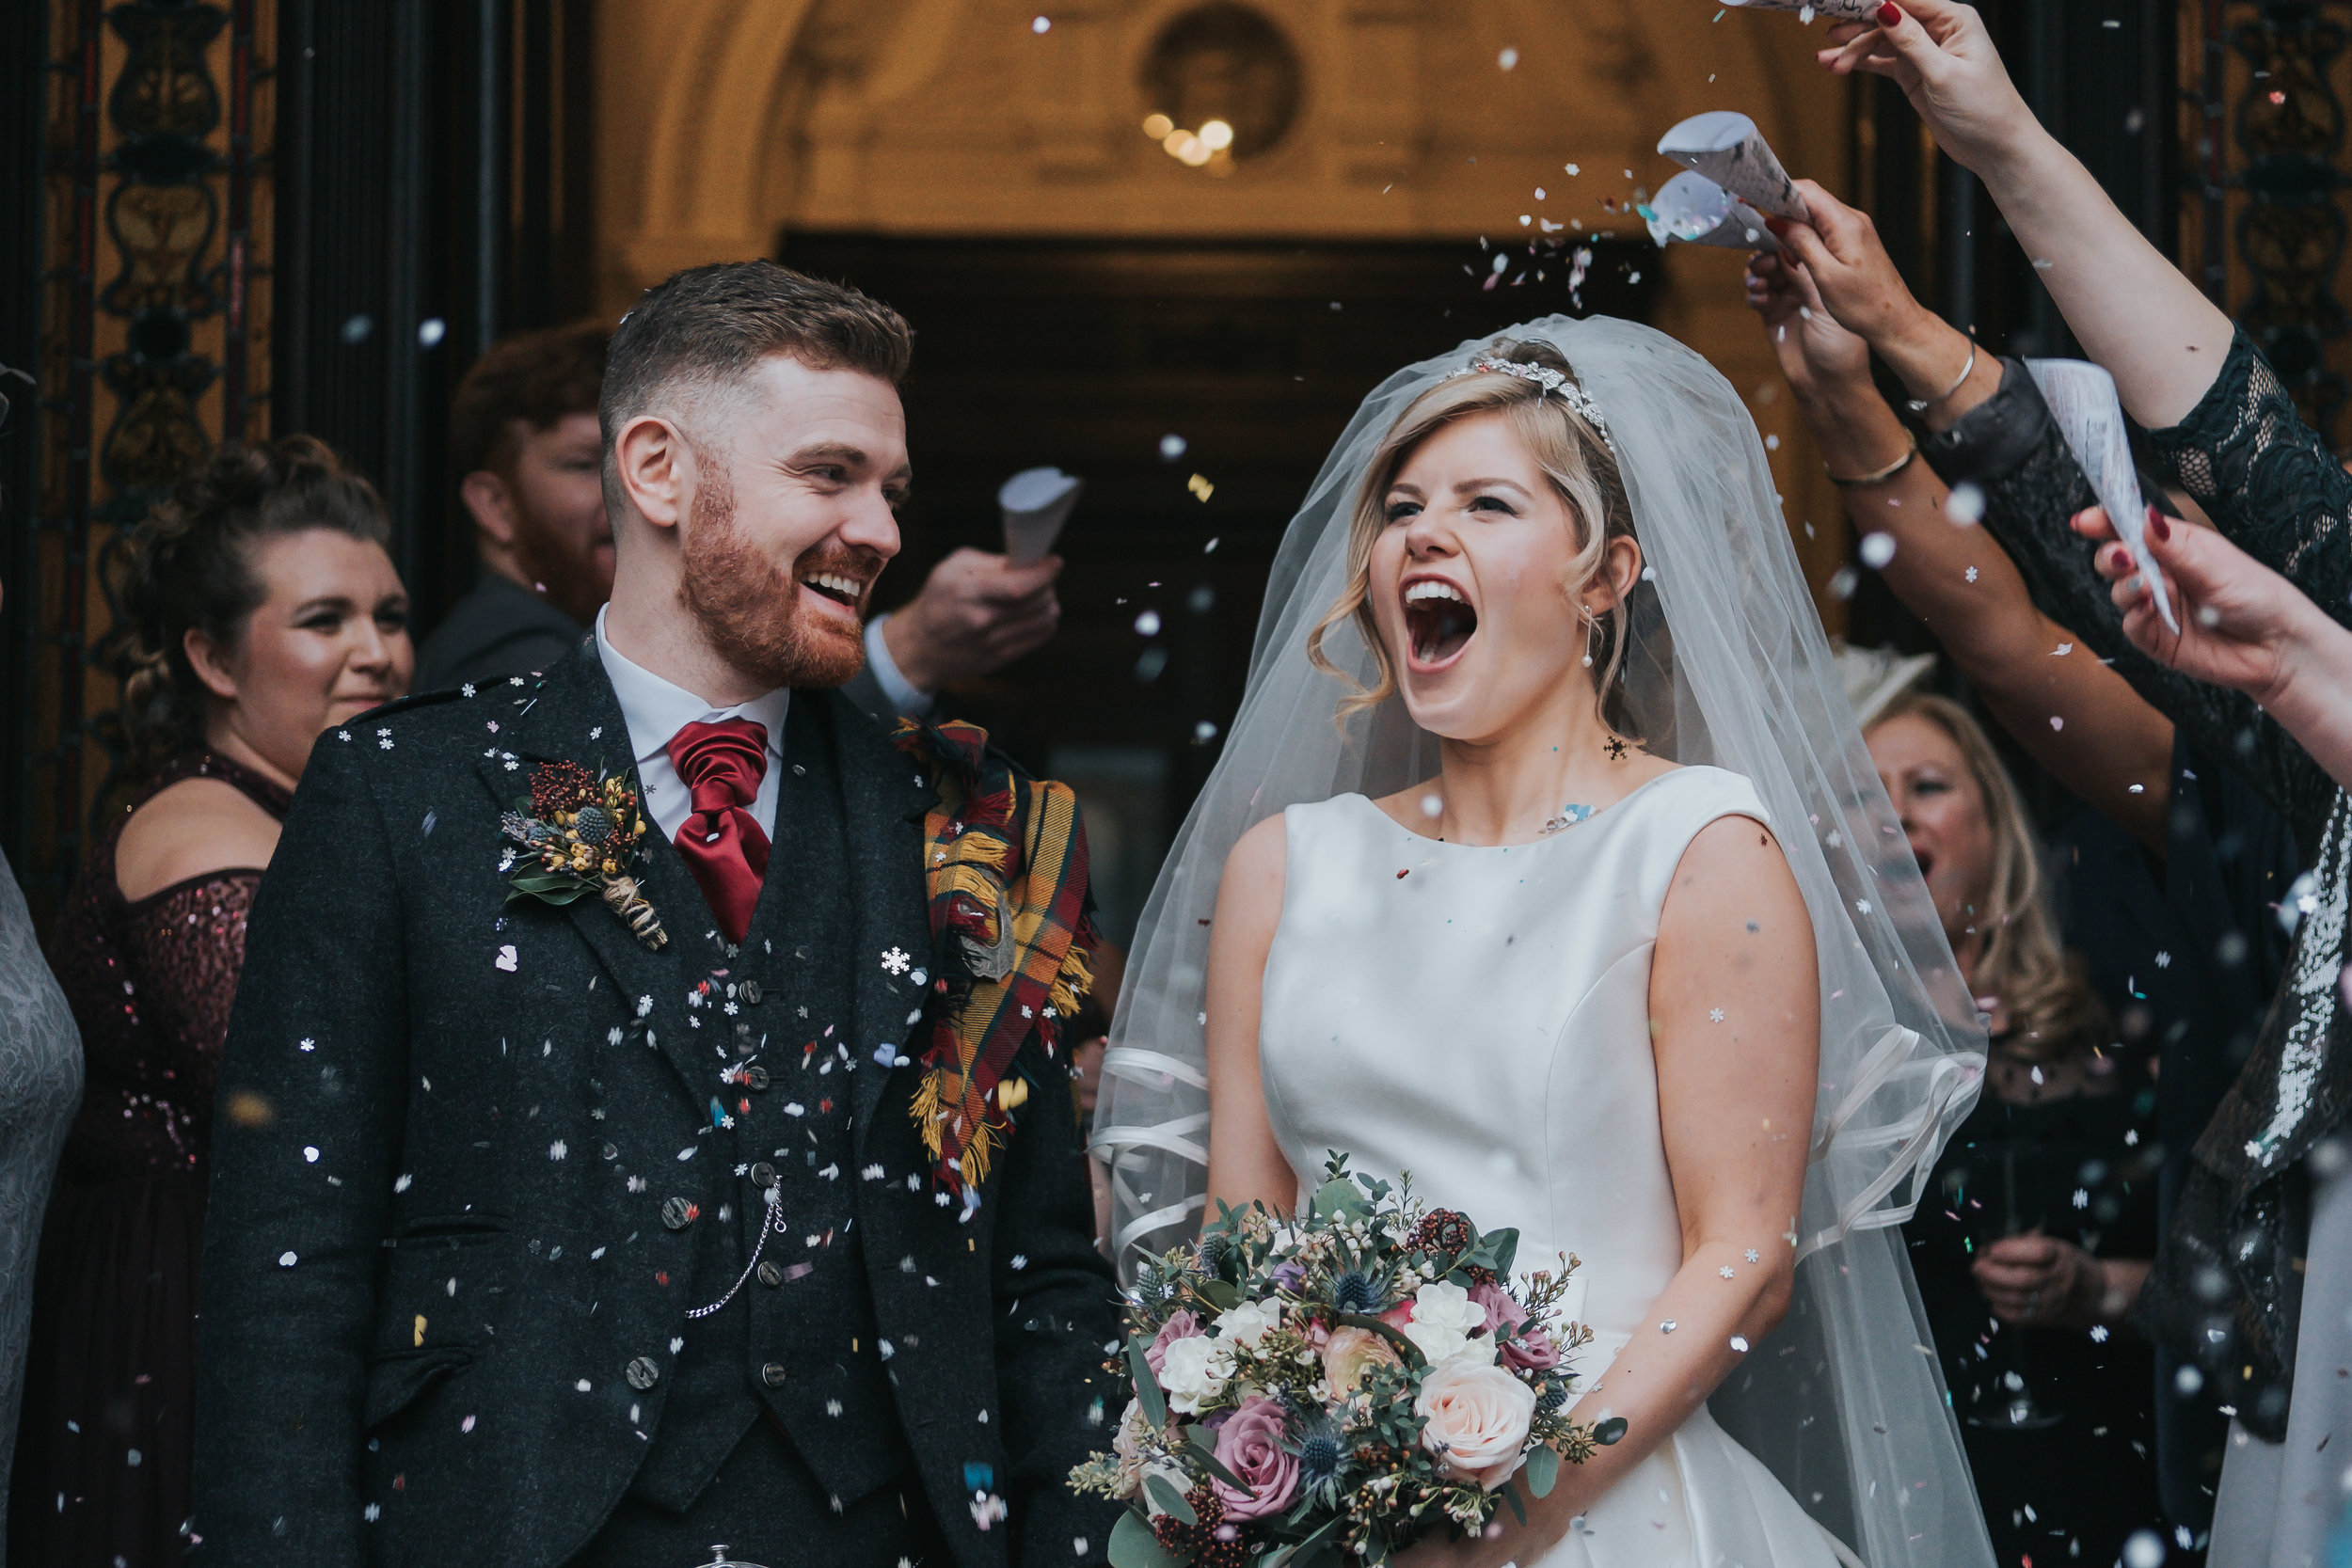 huge confetti shot on the wedding day at the Double Tree by Hilton in Liverpool City Centre